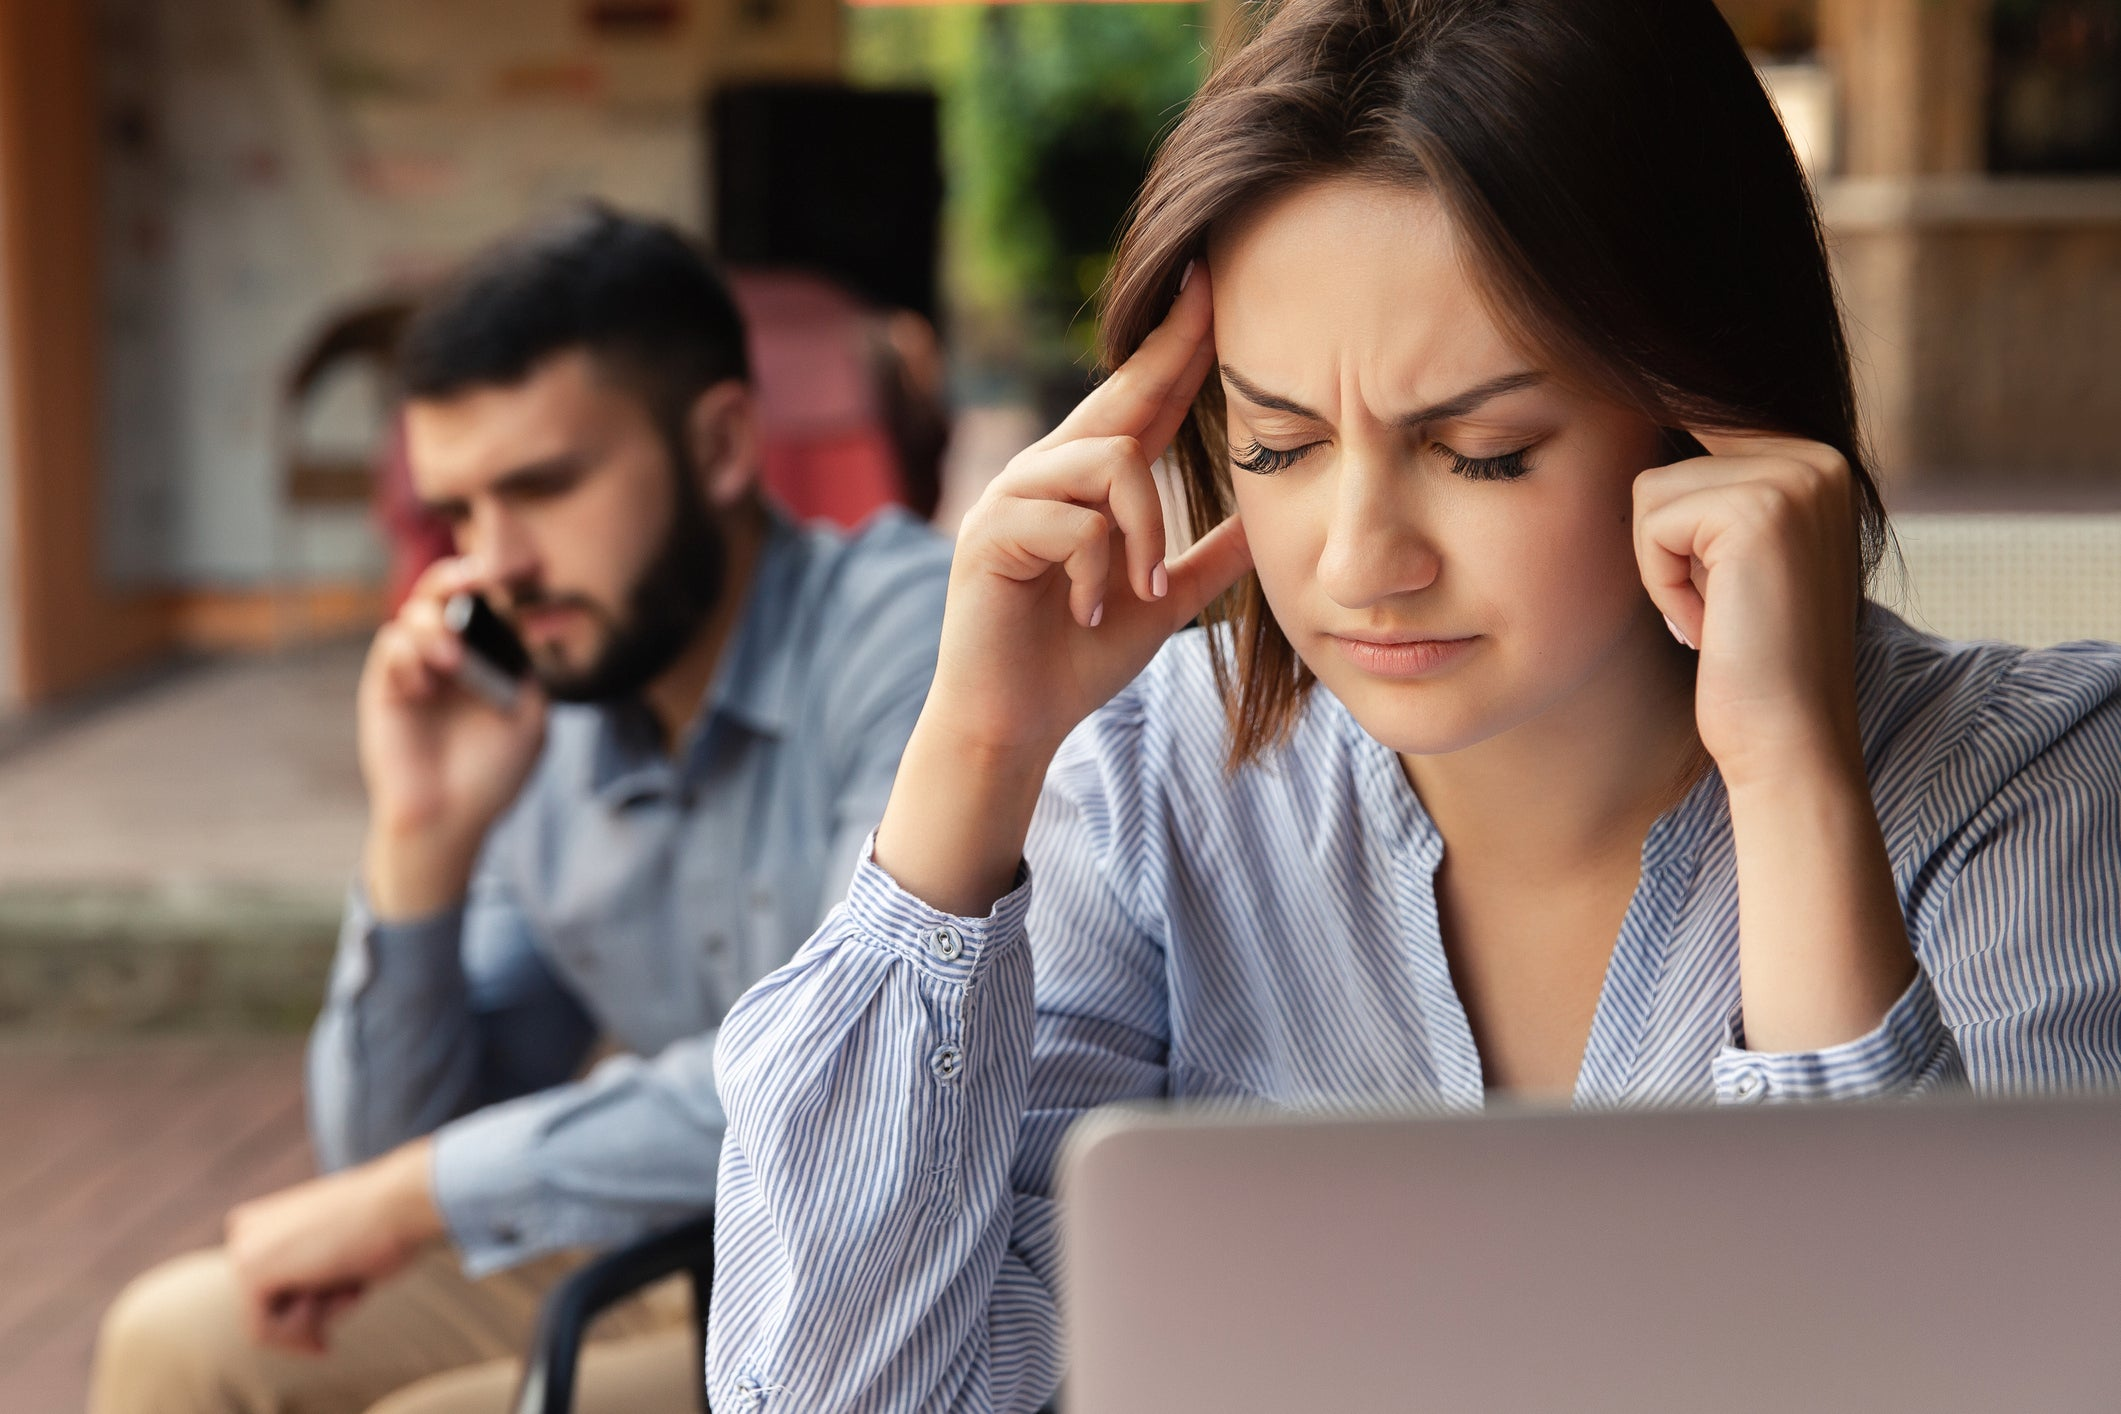 How to Work From Home With Your Spouse Without Hating Each Other